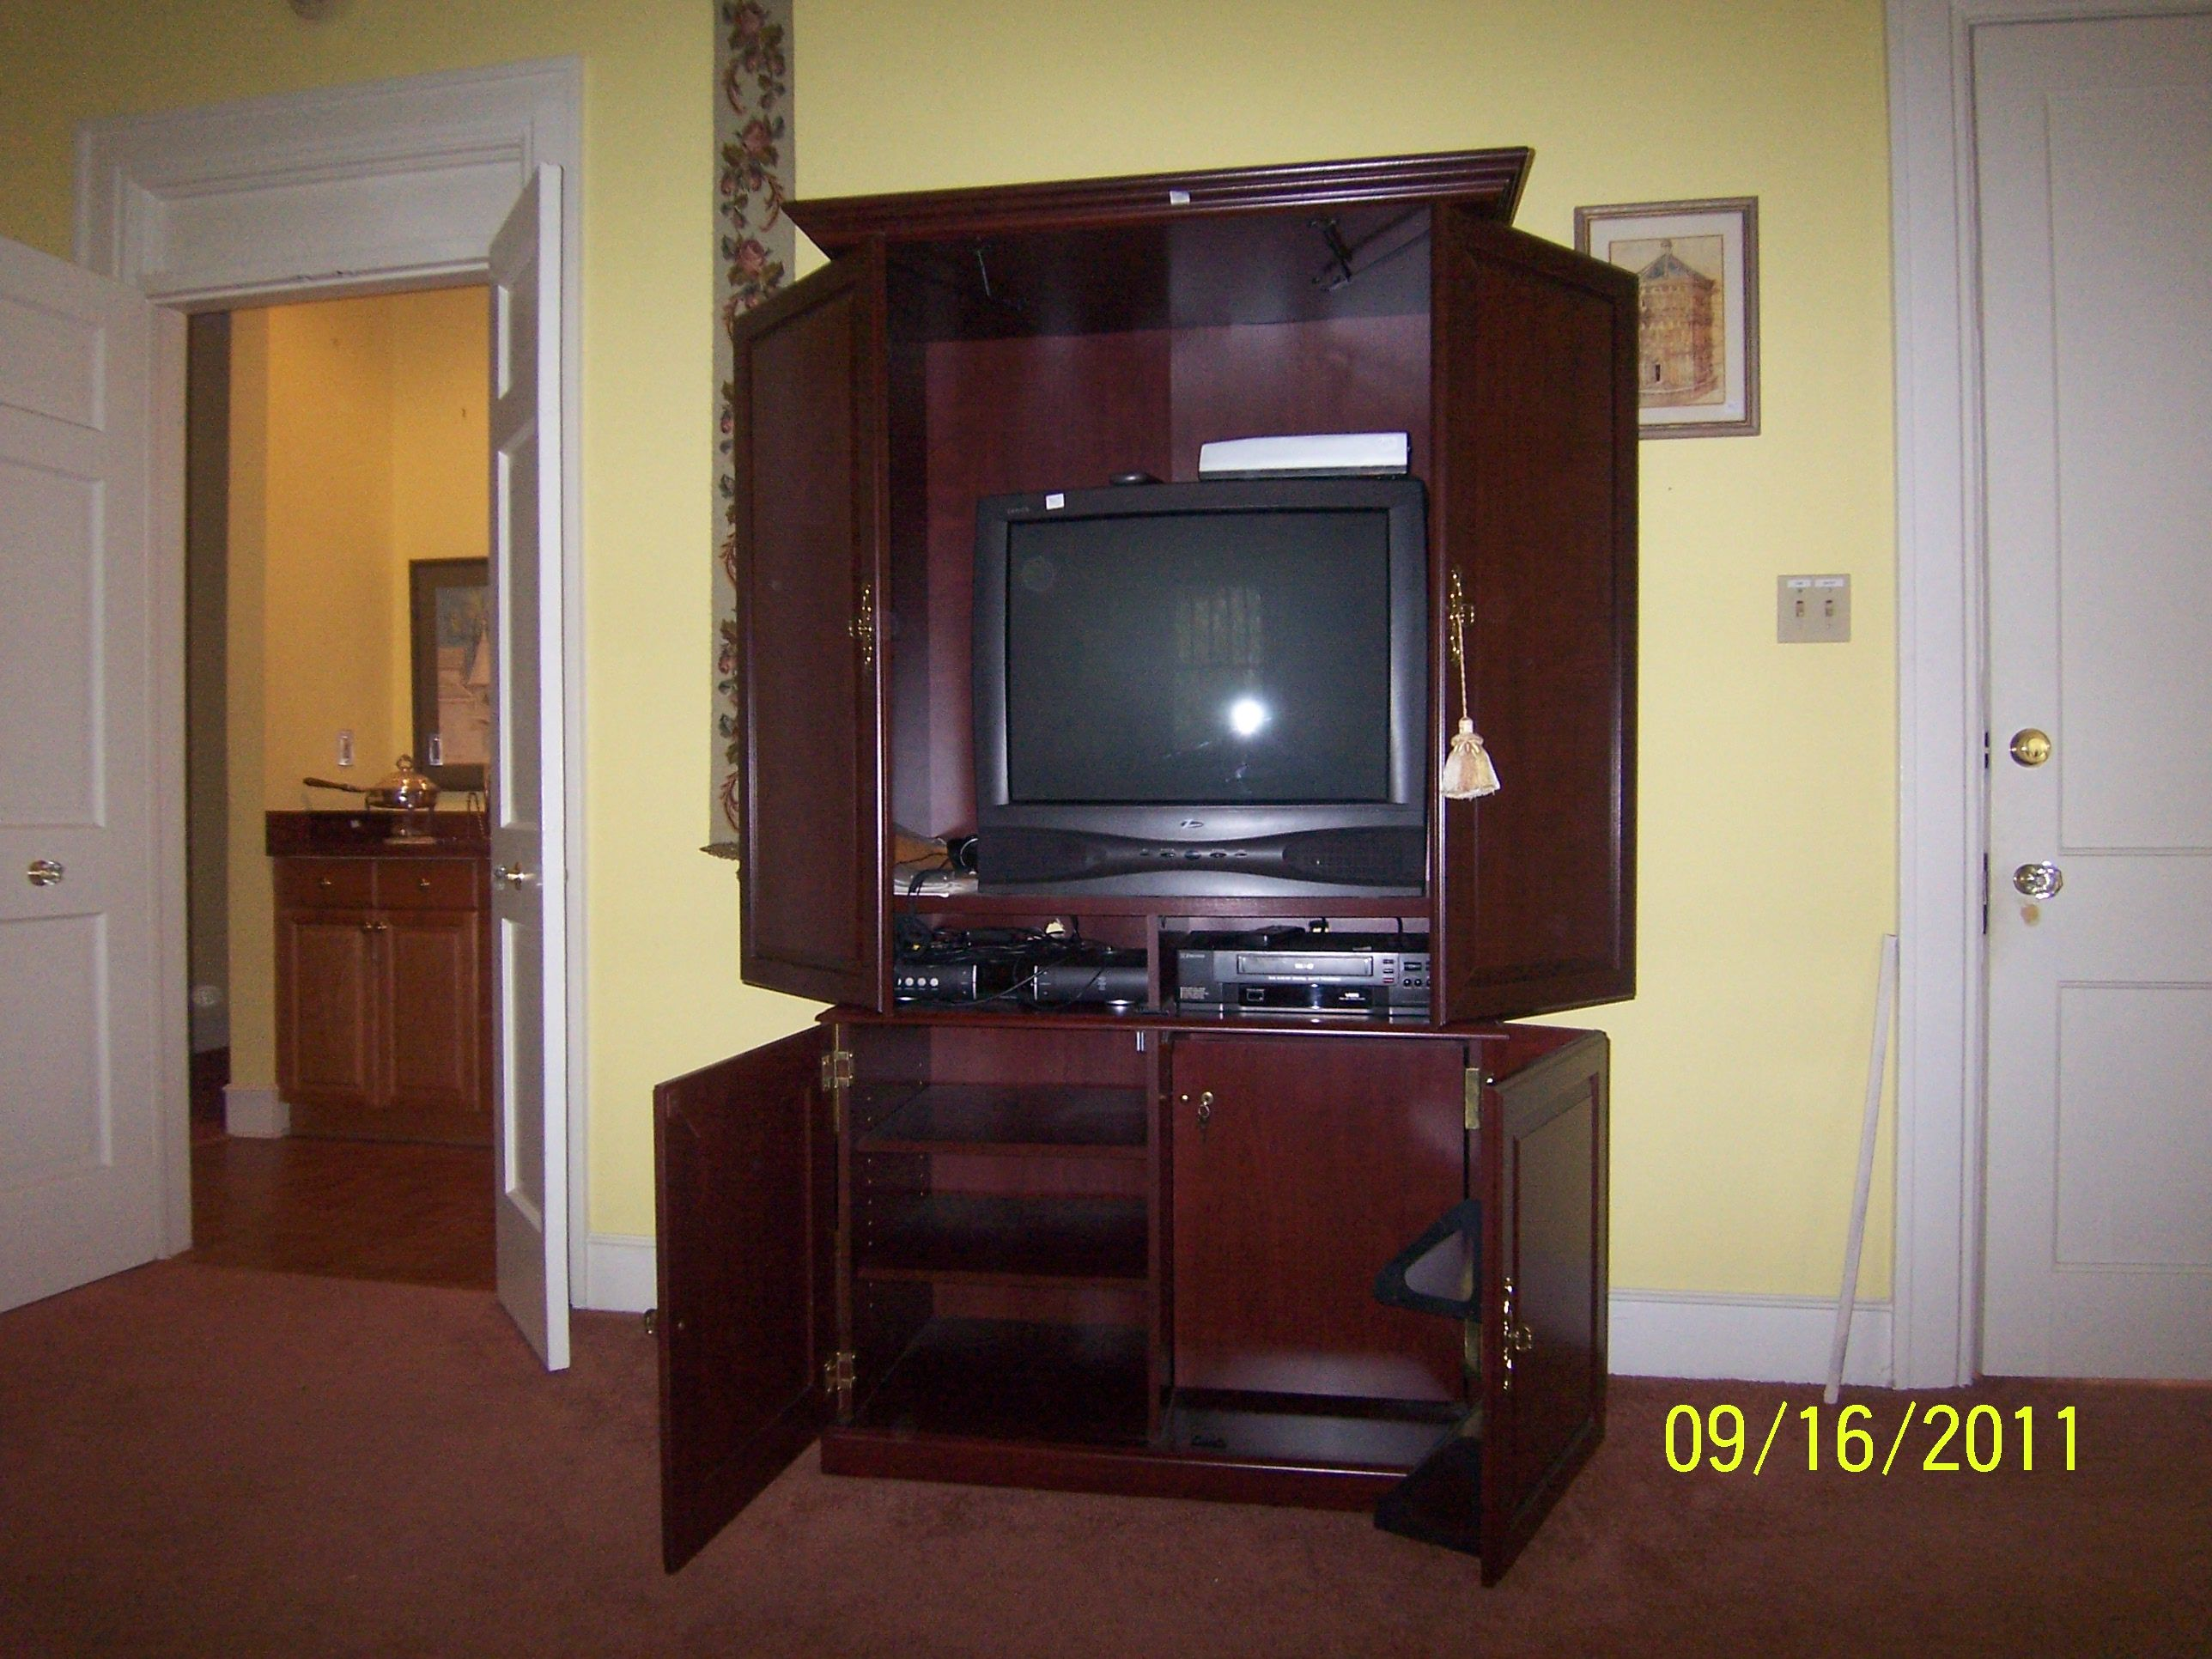 Bombay Tv And Entertainment Center In Poohbeau S Garage Sale Atlanta Ga With Images Tv Built In Sale House Garage Sales